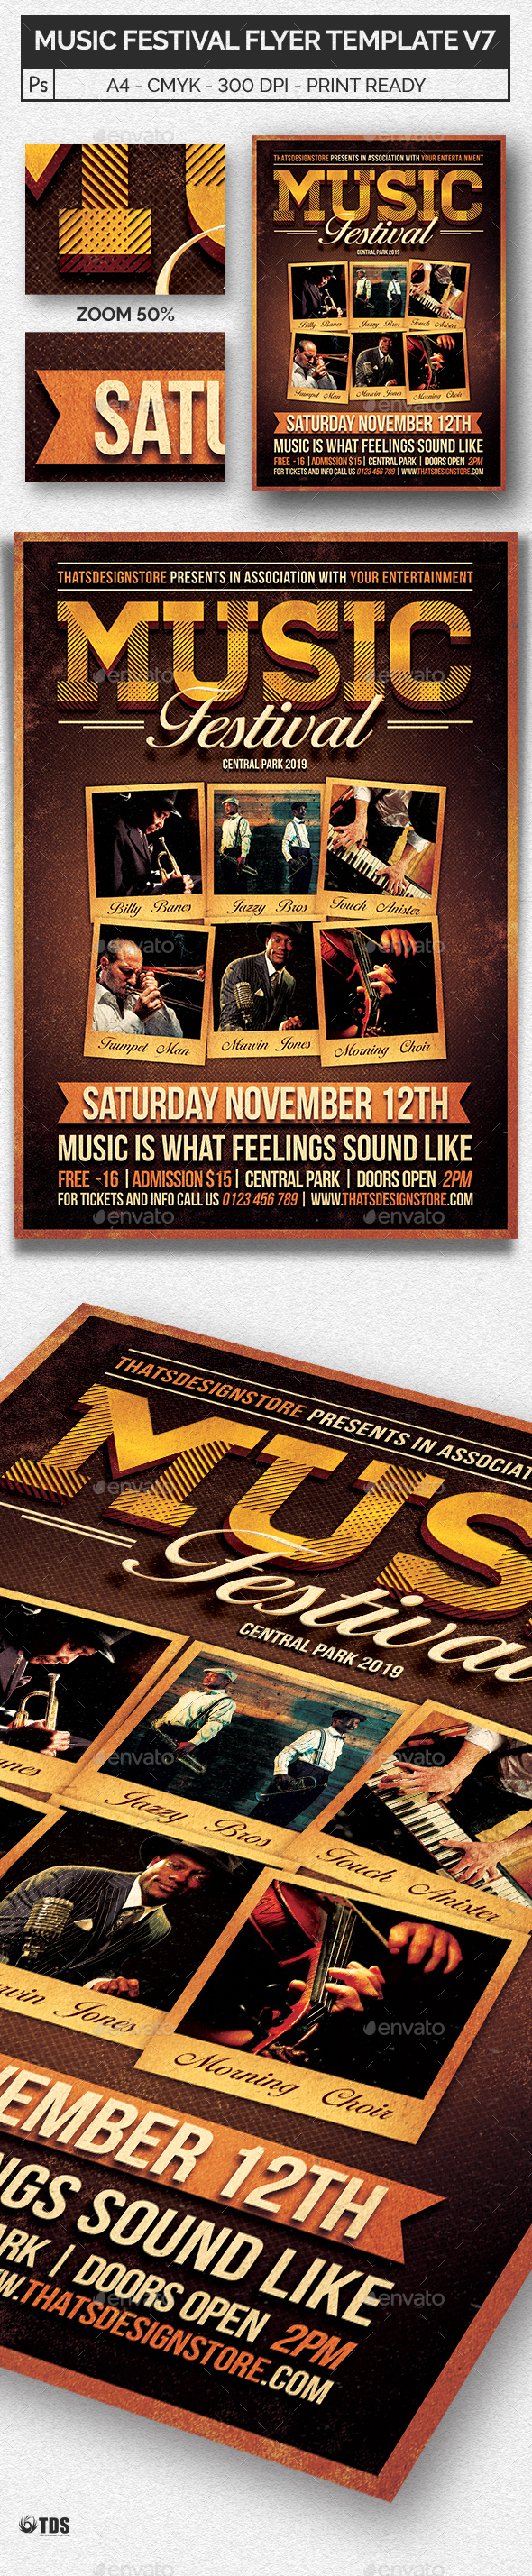 Music Festival Flyer Template V7 - Concerts Events